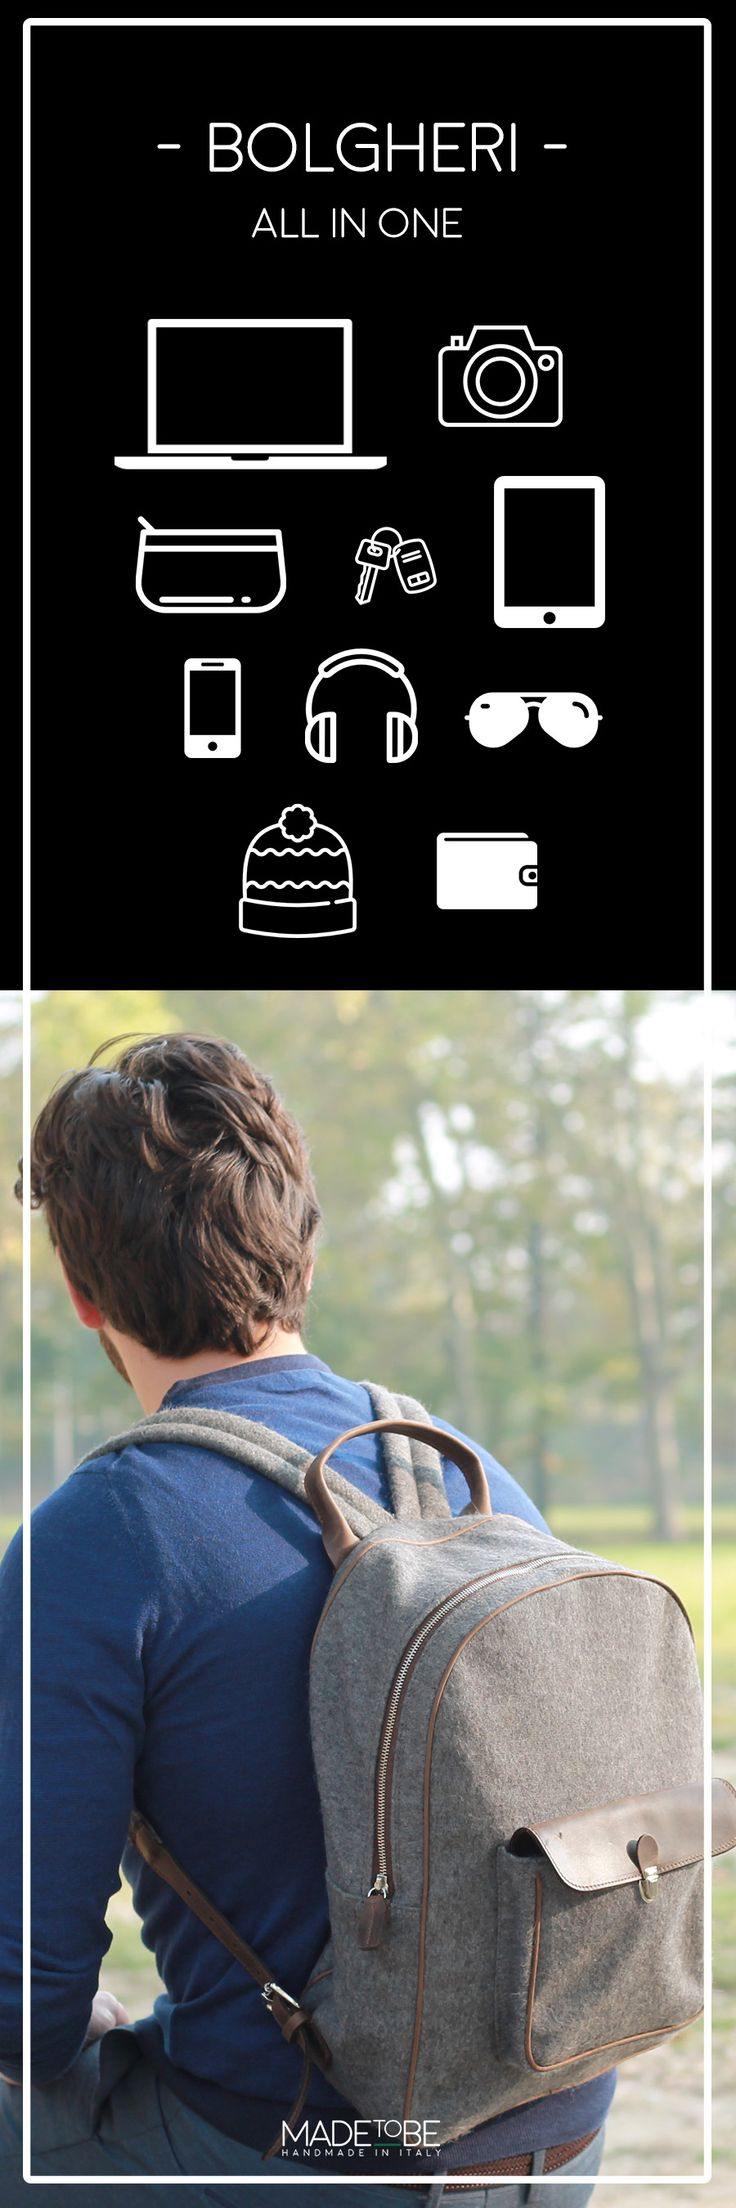 All in one! all your accessories in your Bolgheri Backpack